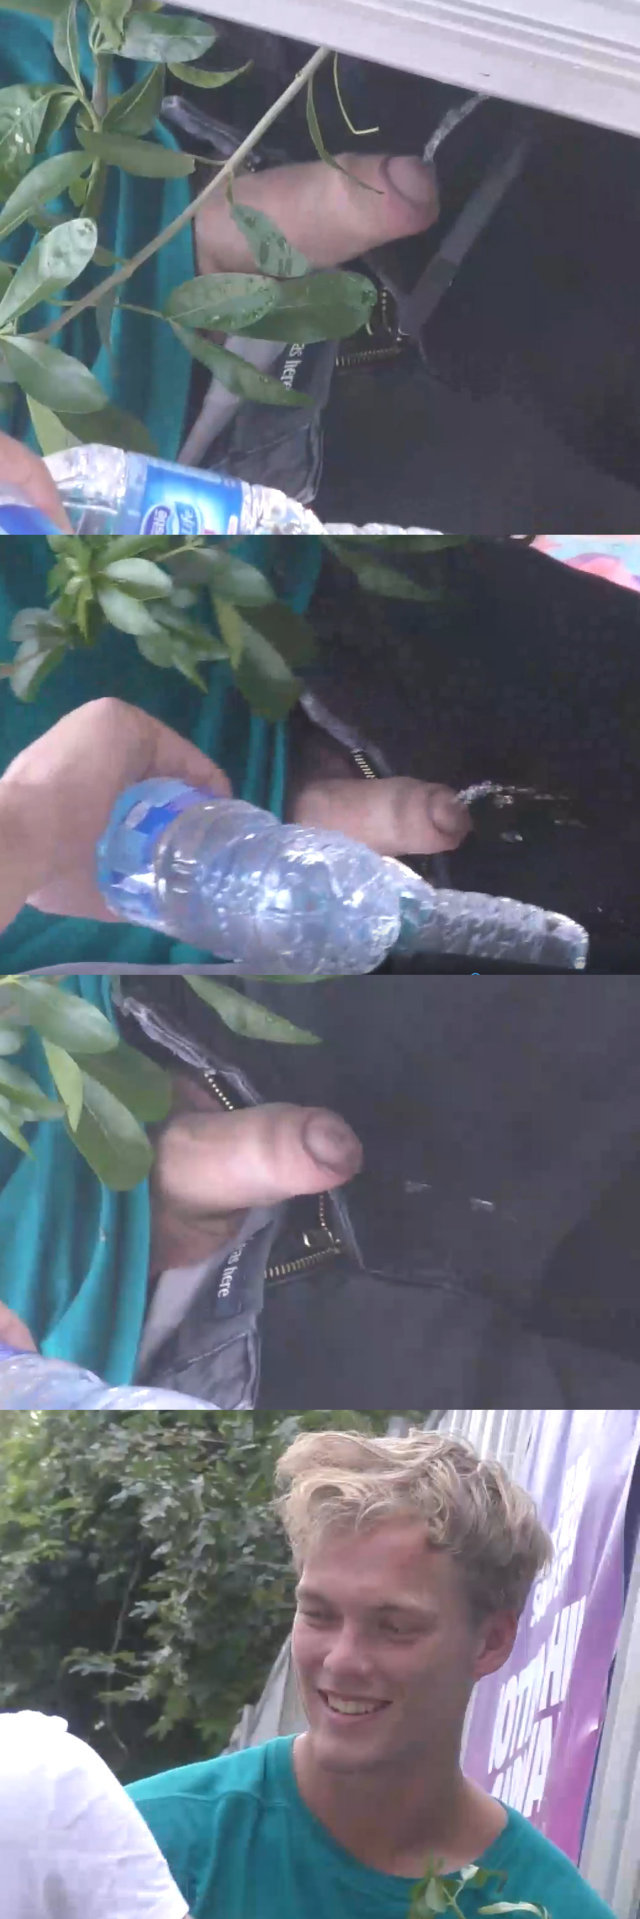 guy caught peeing outdoor during music festival